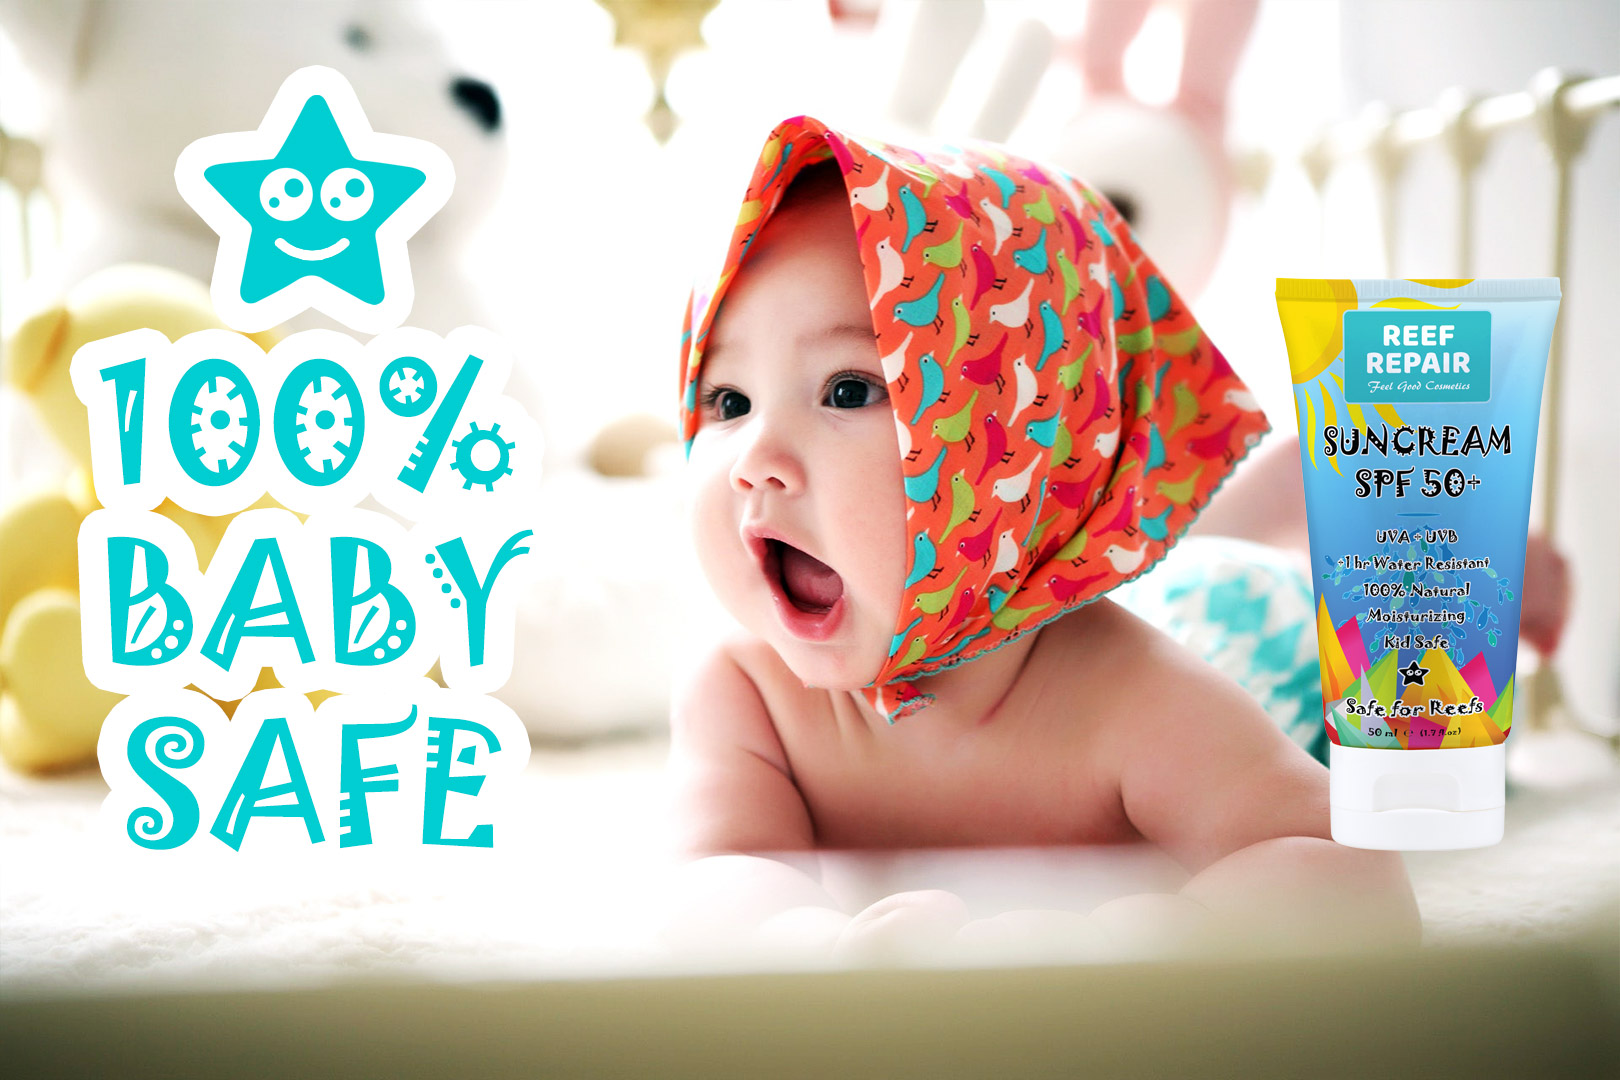 Baby Safe Reef Safe Skin Safe All Natural Spf 50 Sunscreen For Kids By Reef Repair 50ml